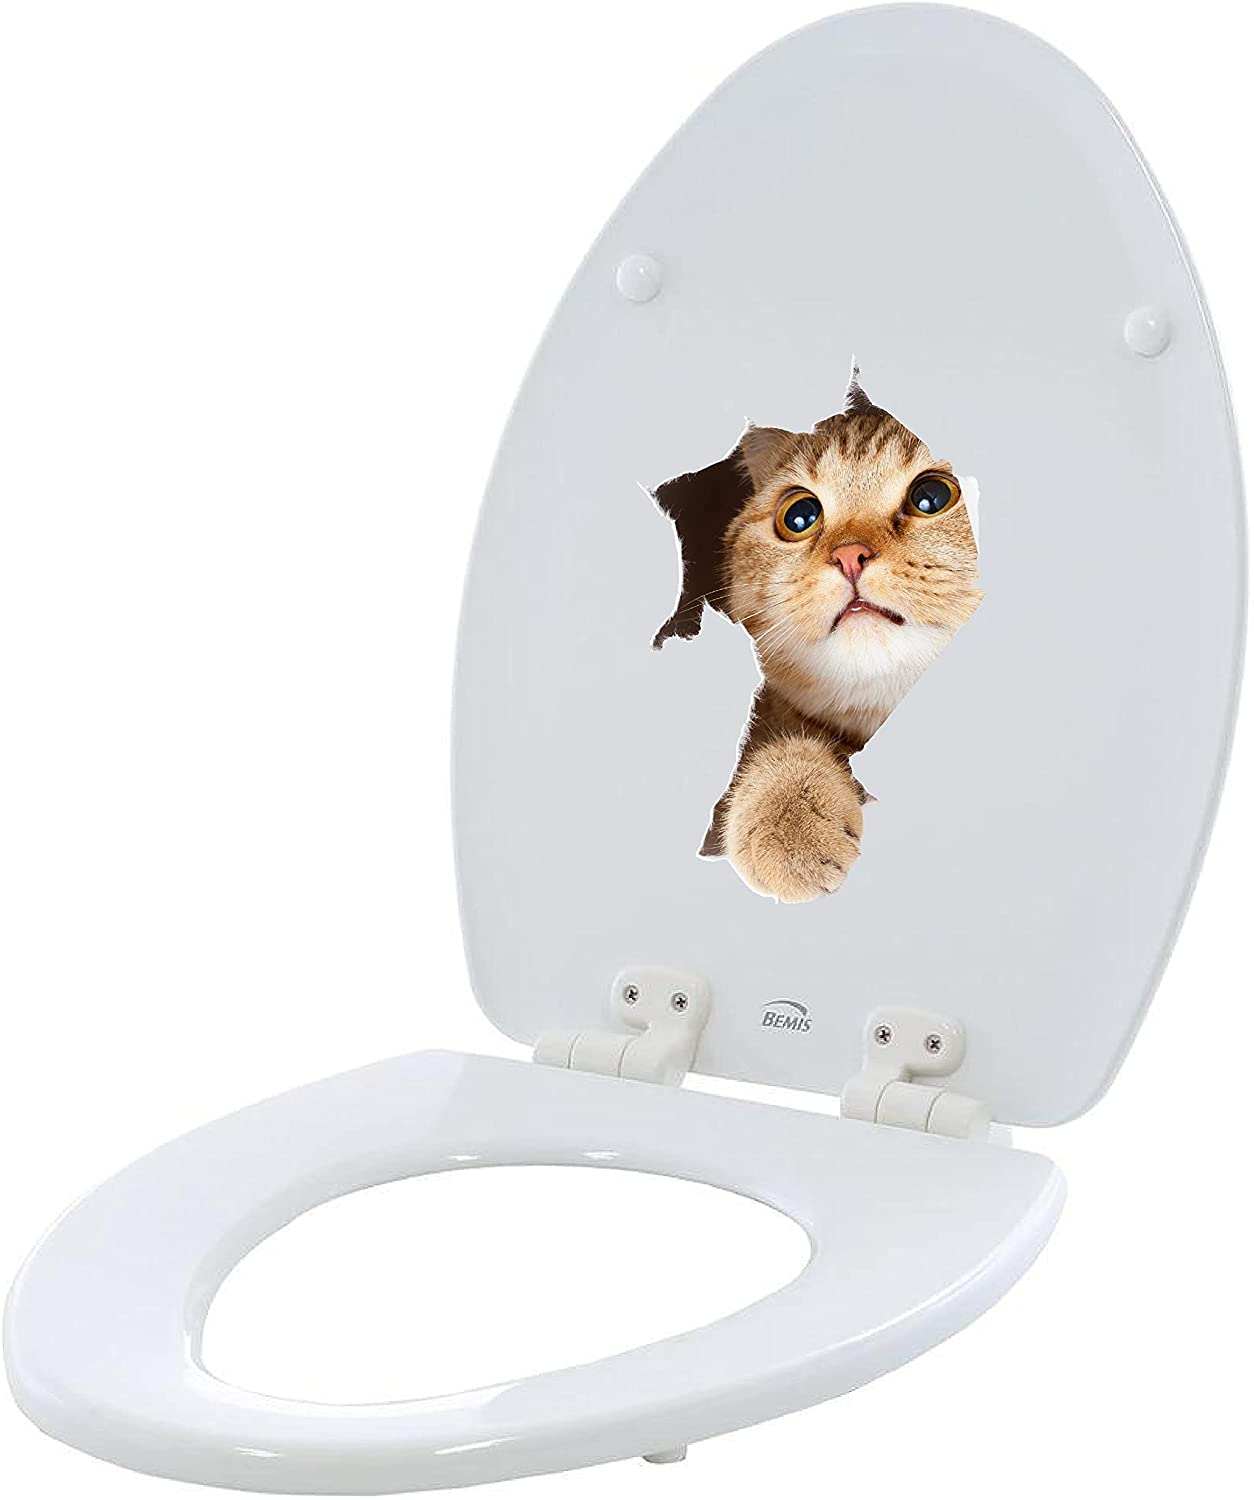 Bathroom Miami Free Shipping New Mall Toilet seat Sticker Decal - Breaking Cat Break Out Fu